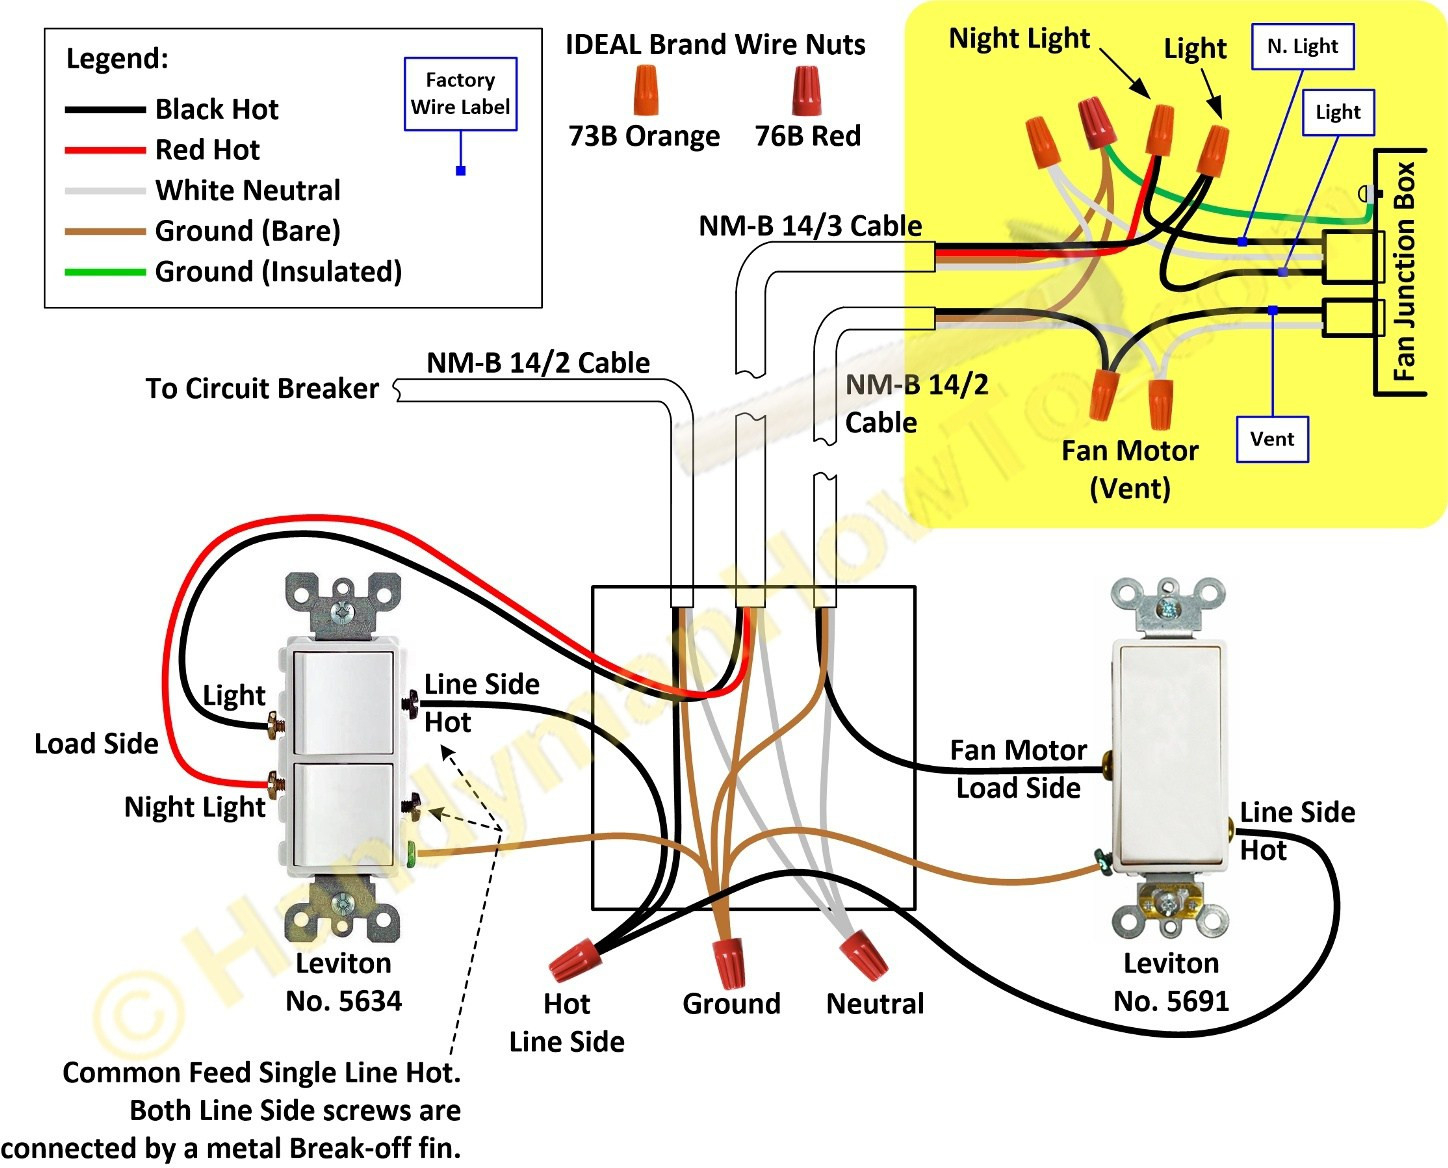 meyer snow plow toggle switch wiring diagram Collection Meyer Snow Plow  Wiring Diagram E47 WIRING Wiring